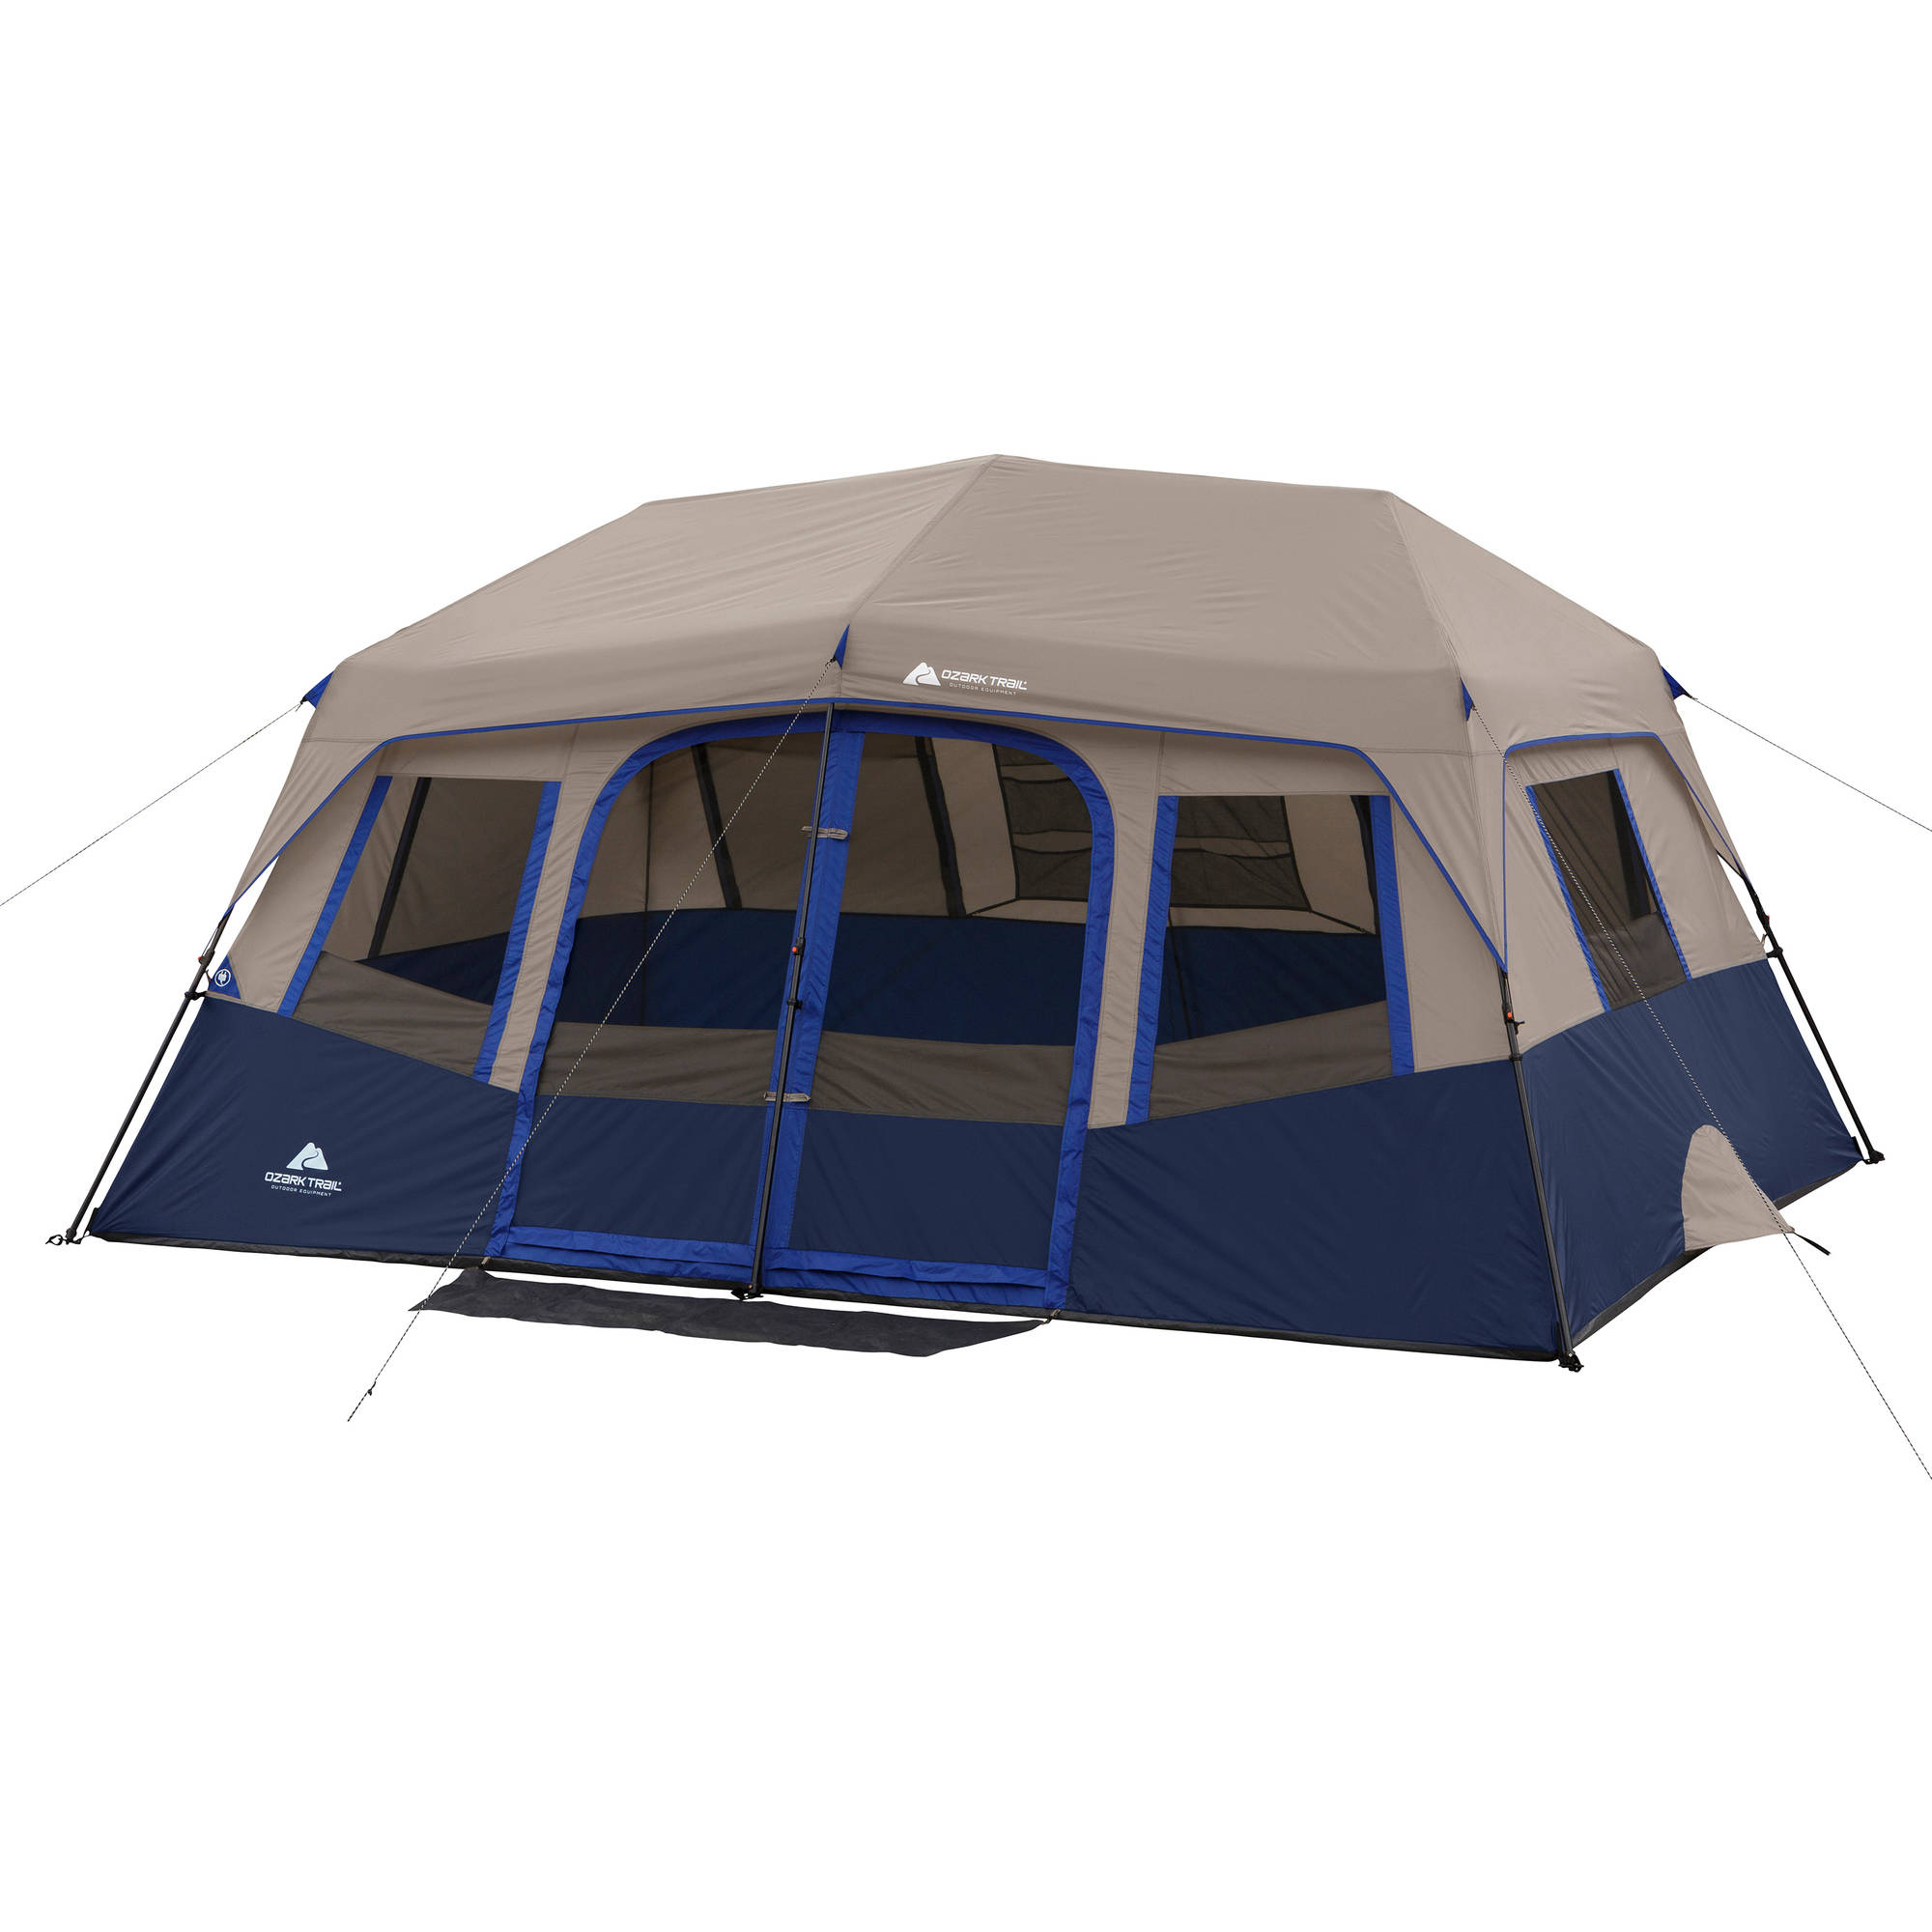 Ozark Trail 10 Person 2 Room Instant Cabin Tent  sc 1 st  Walmart & Ozark Trail 10 Person Instant Cabin Tent u0026 4 Bonus Folding Chairs ...